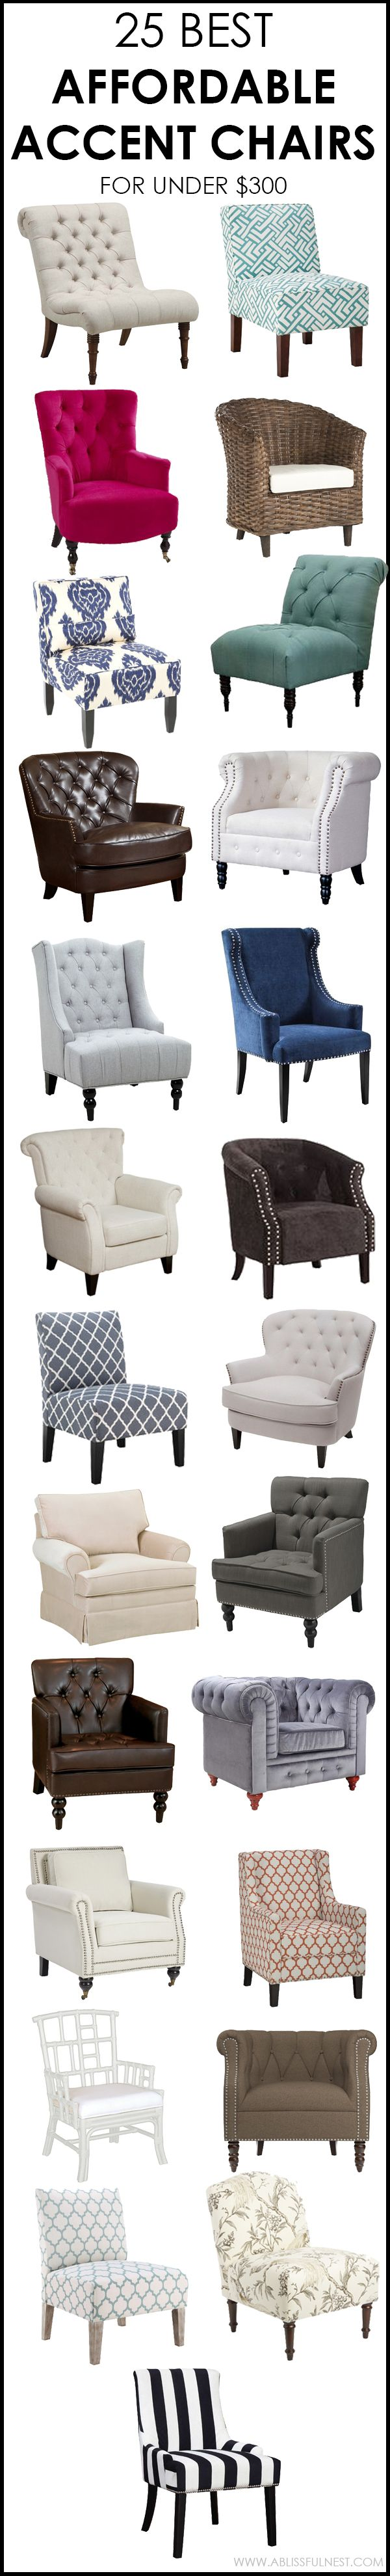 The most affordable accent chairs under $300 full of style and the perfect piece for your room. via ablissfulnest.com